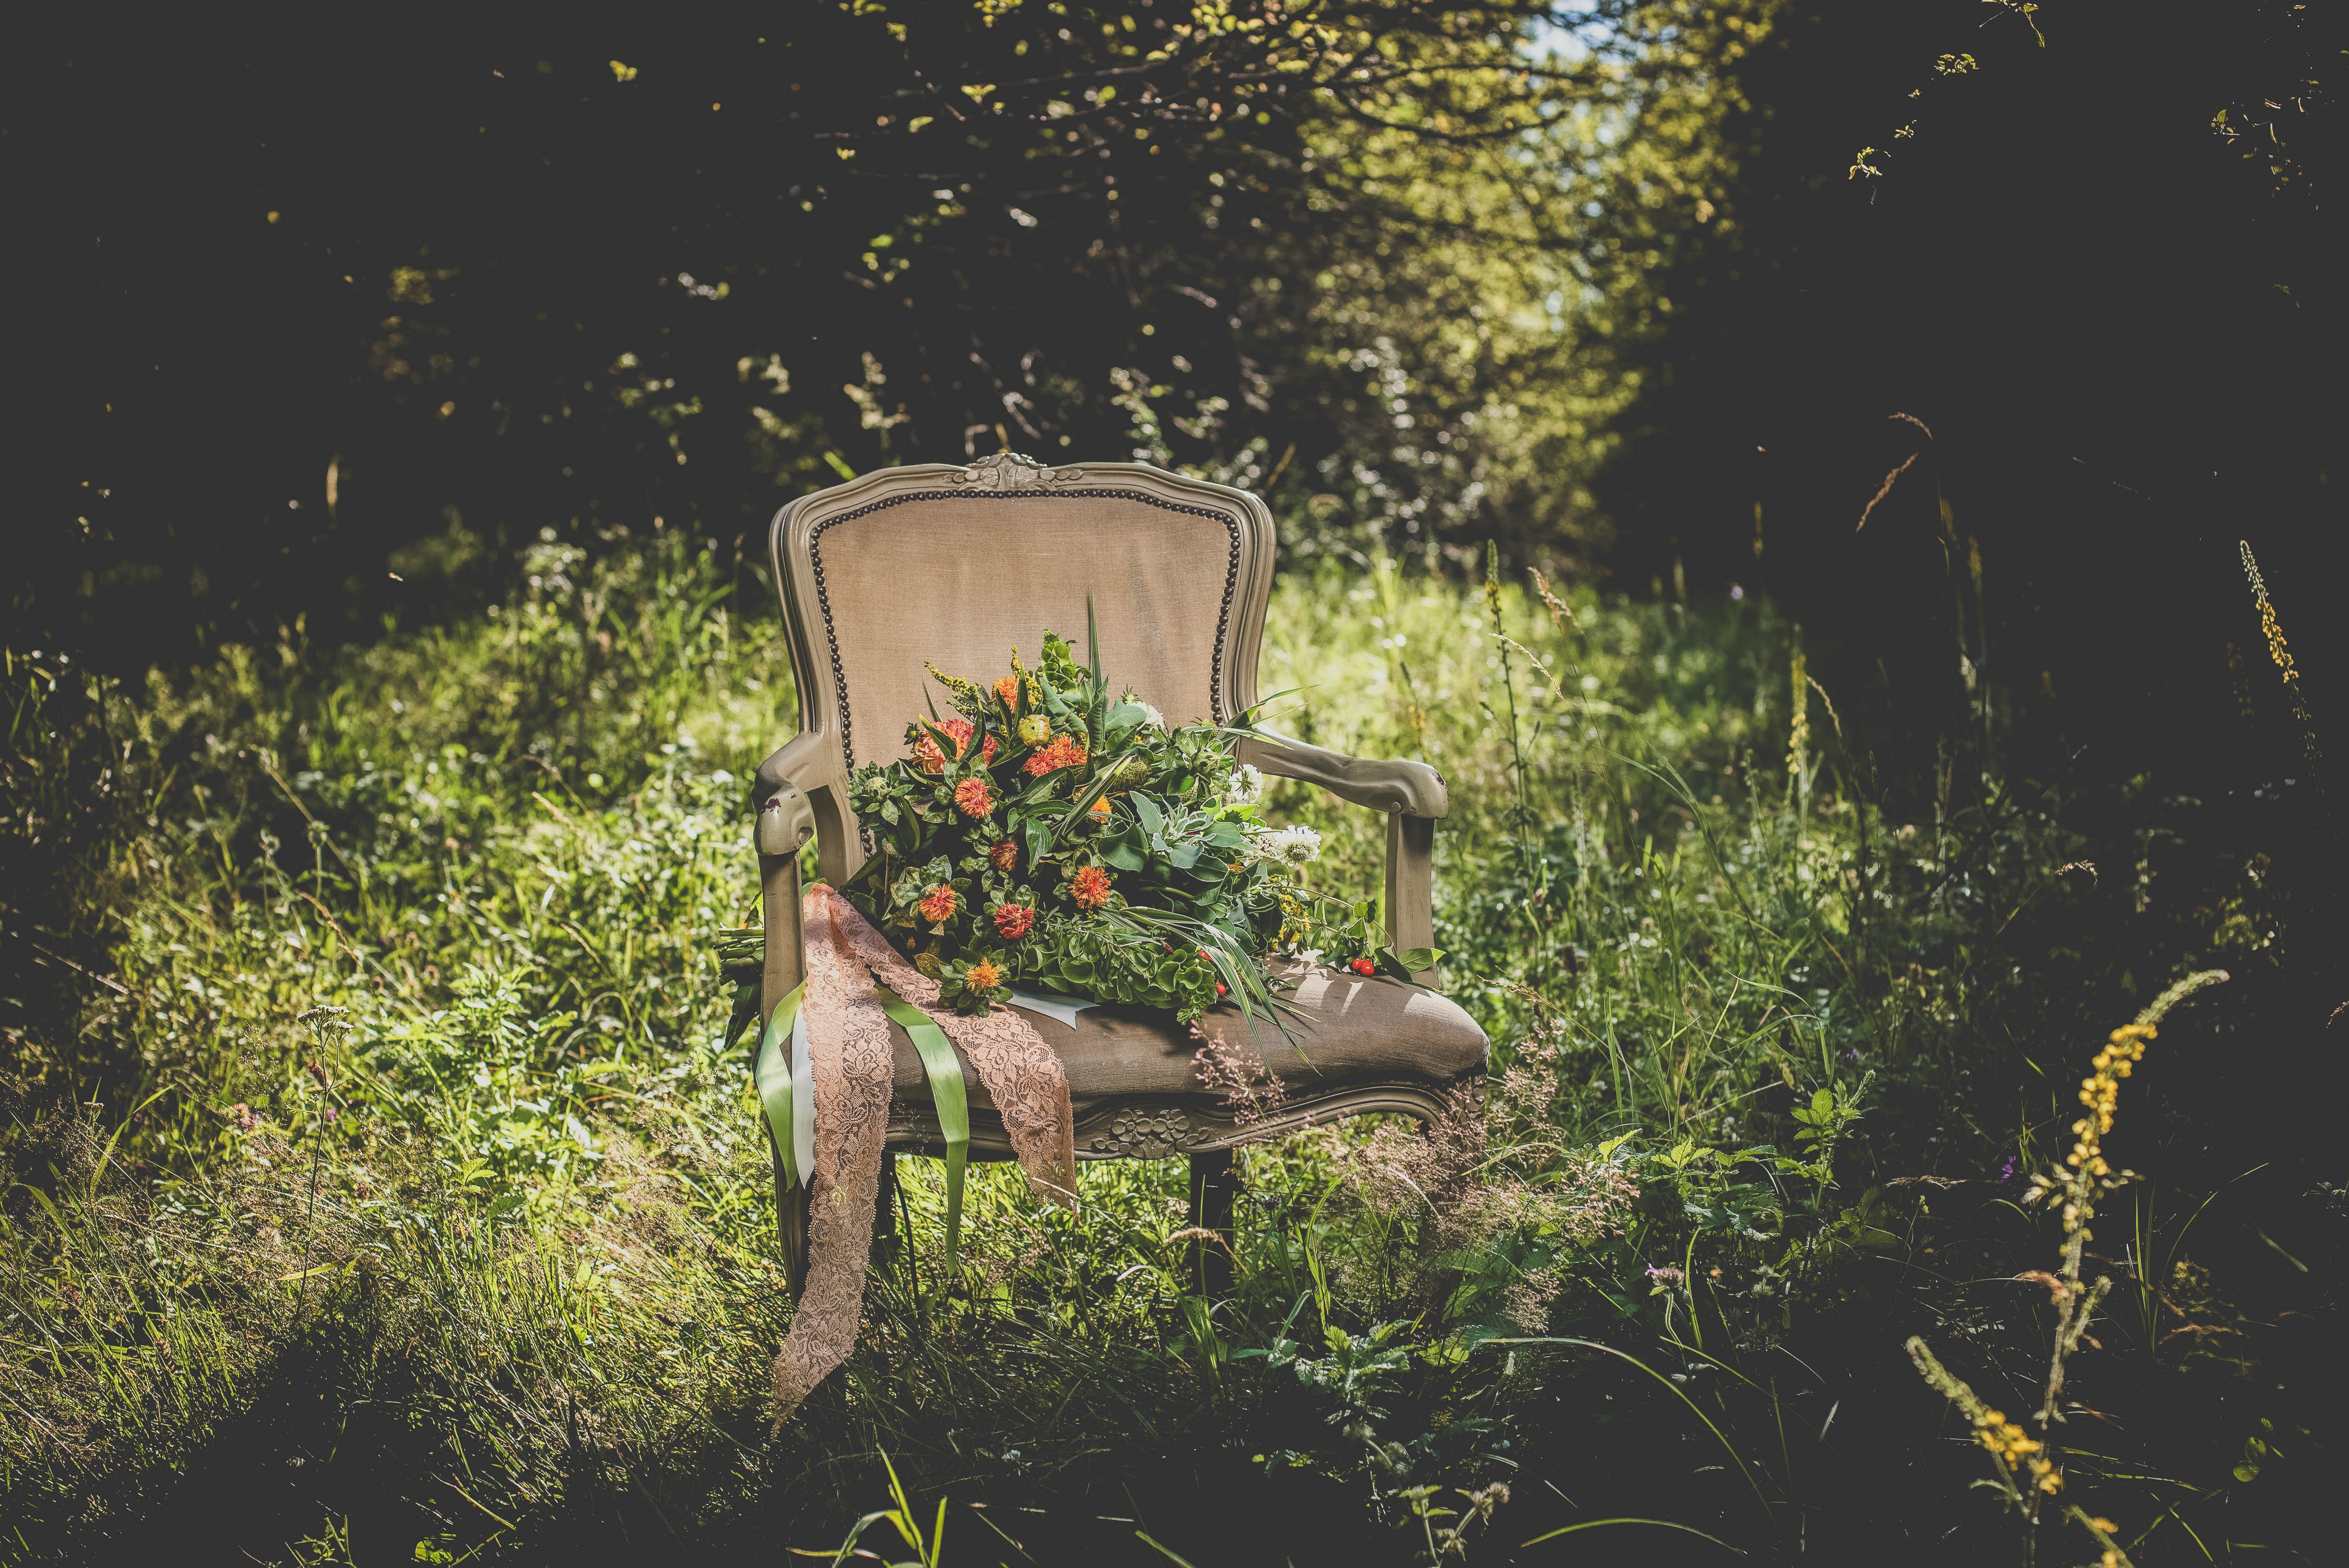 A bouquet of orange flowers on an elegant chair standing in tall grass